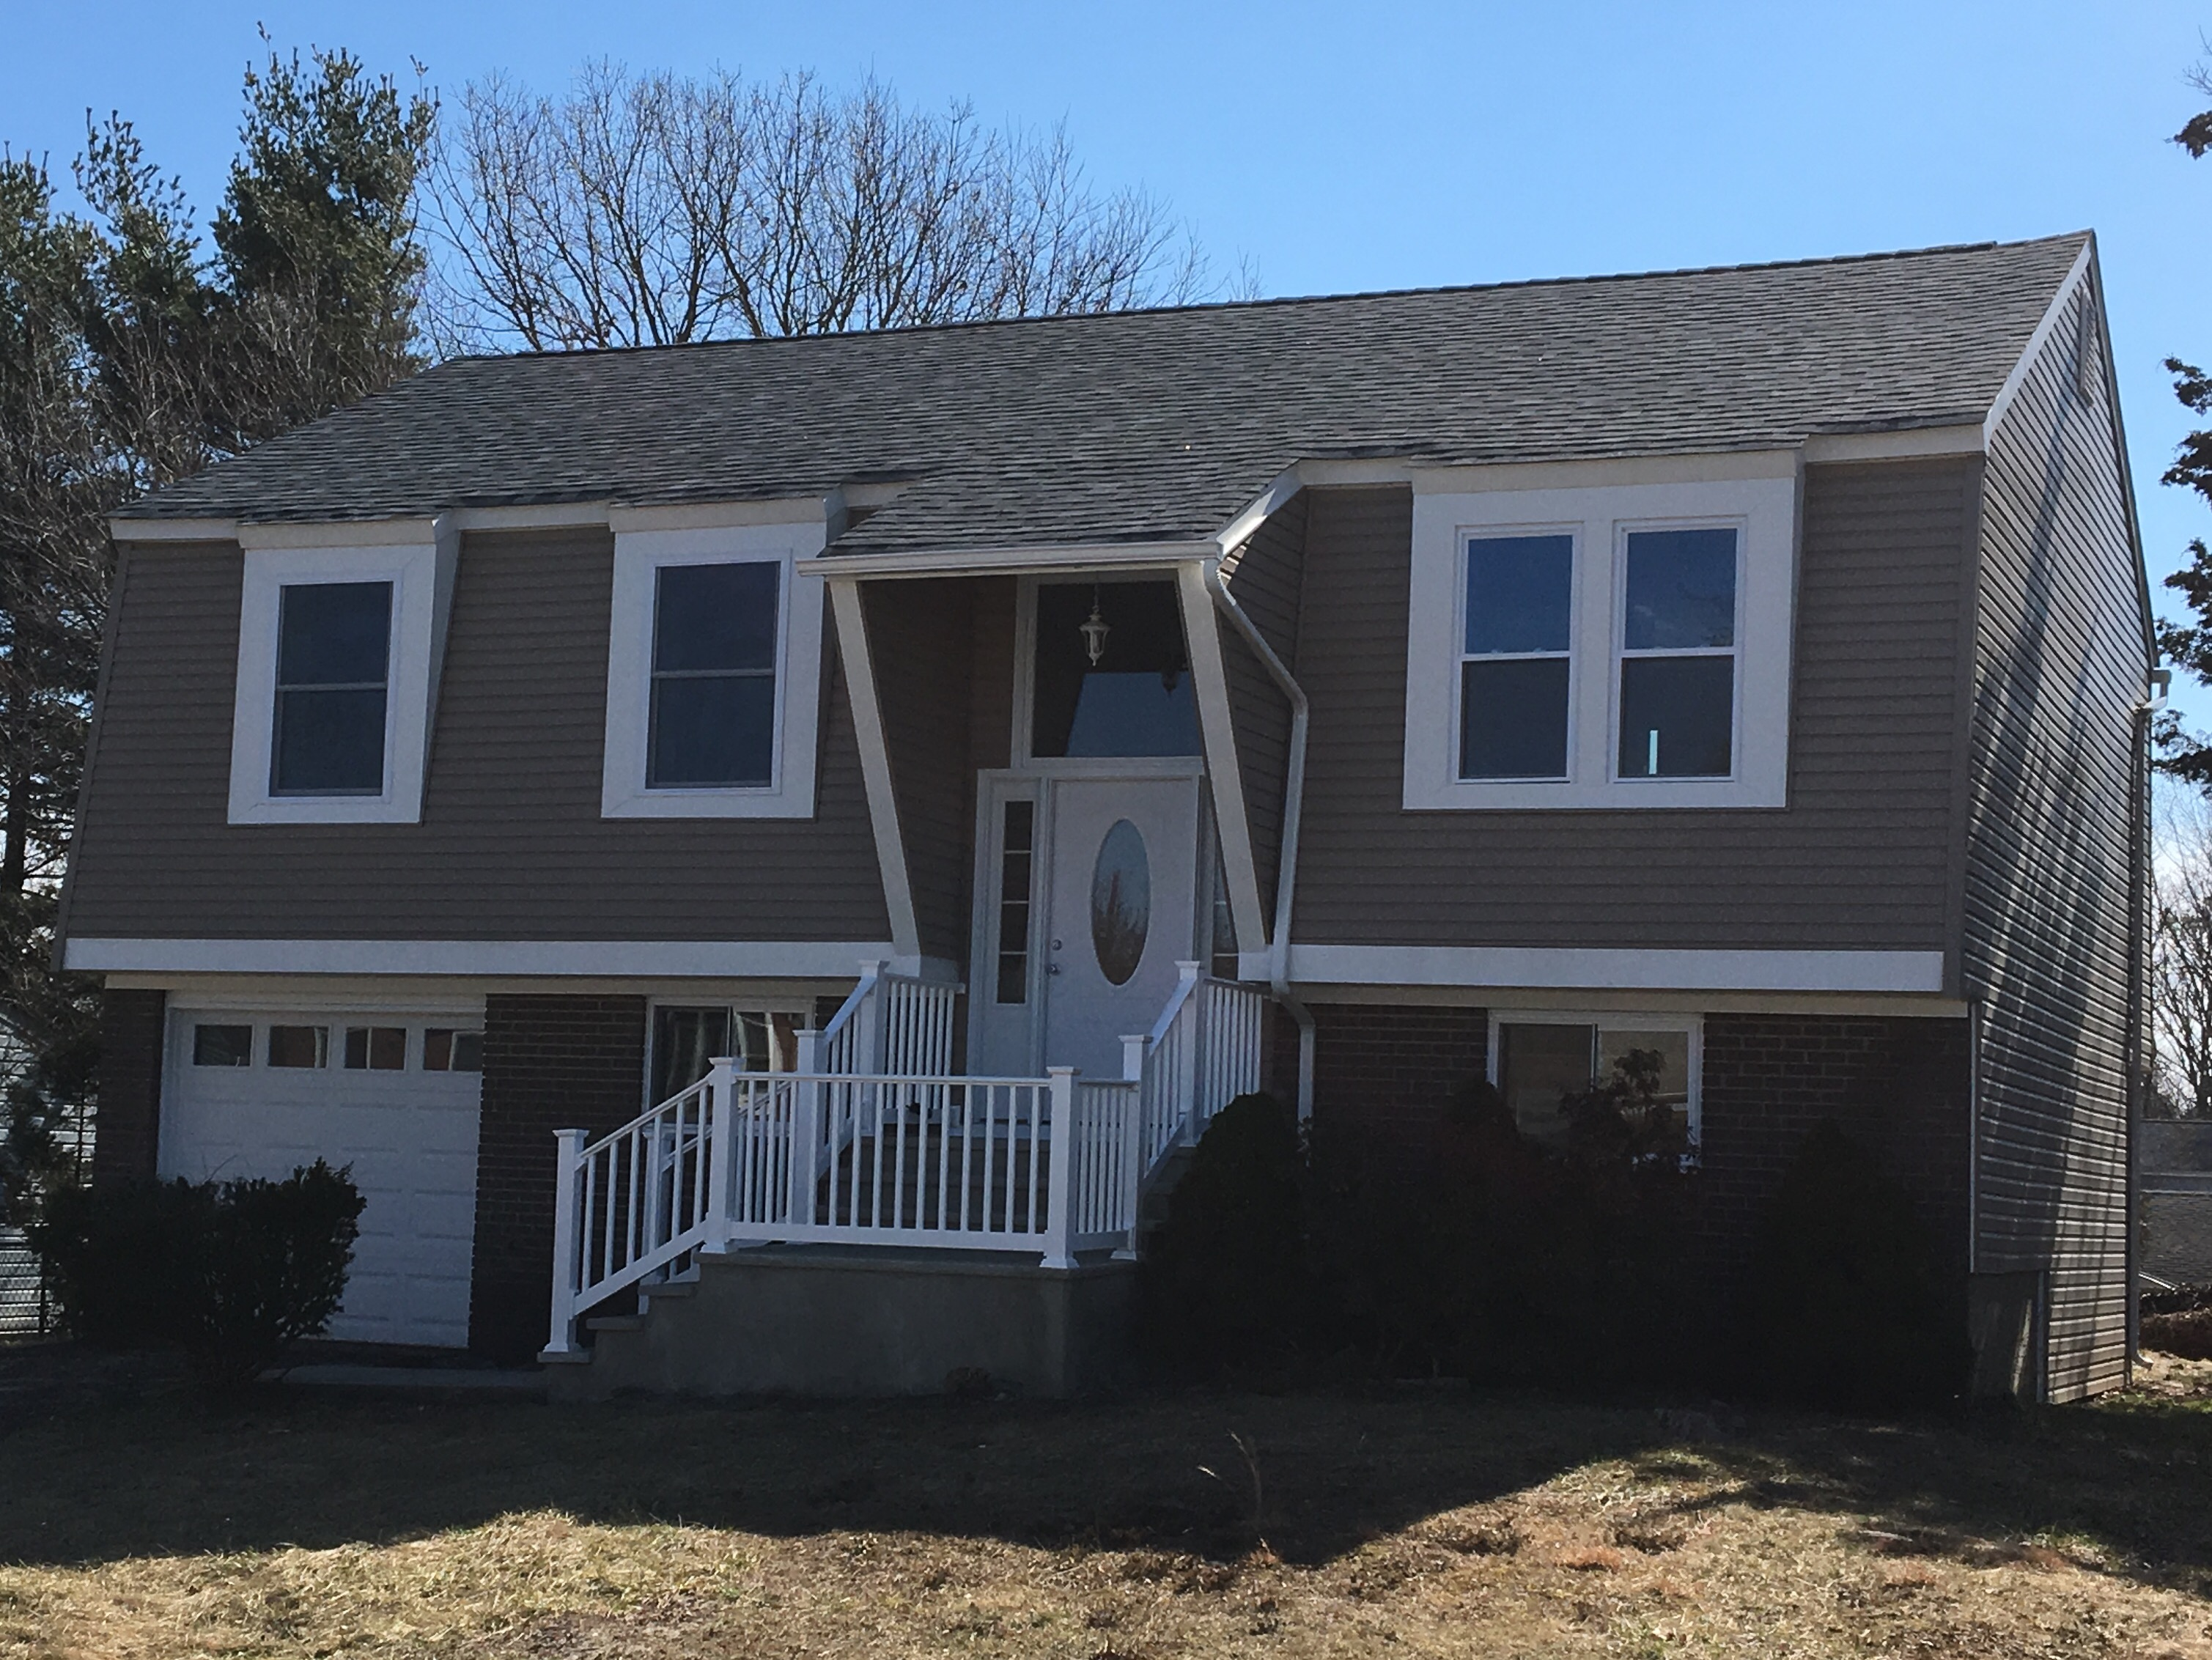 Single Family Home for Sale at 15 Capstan Street Barnegat, New Jersey 08005 United States